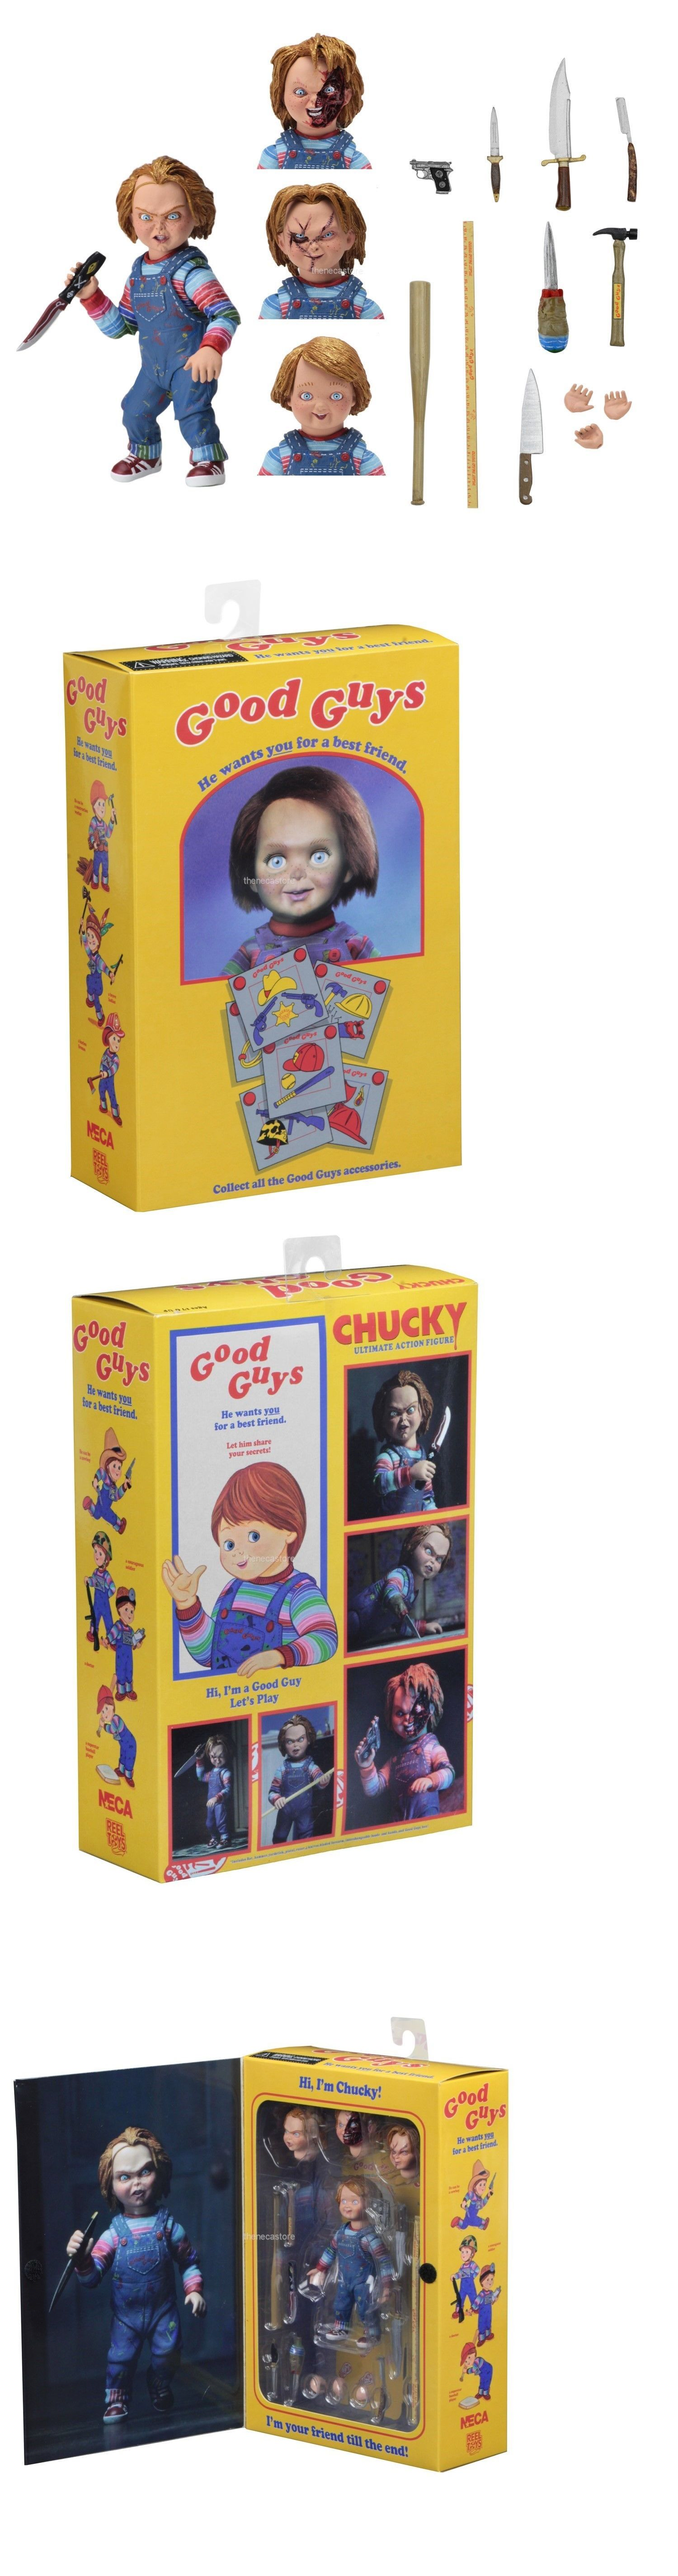 4 inch toy Chucky action figure children/'s game ultimate Chucky model toy